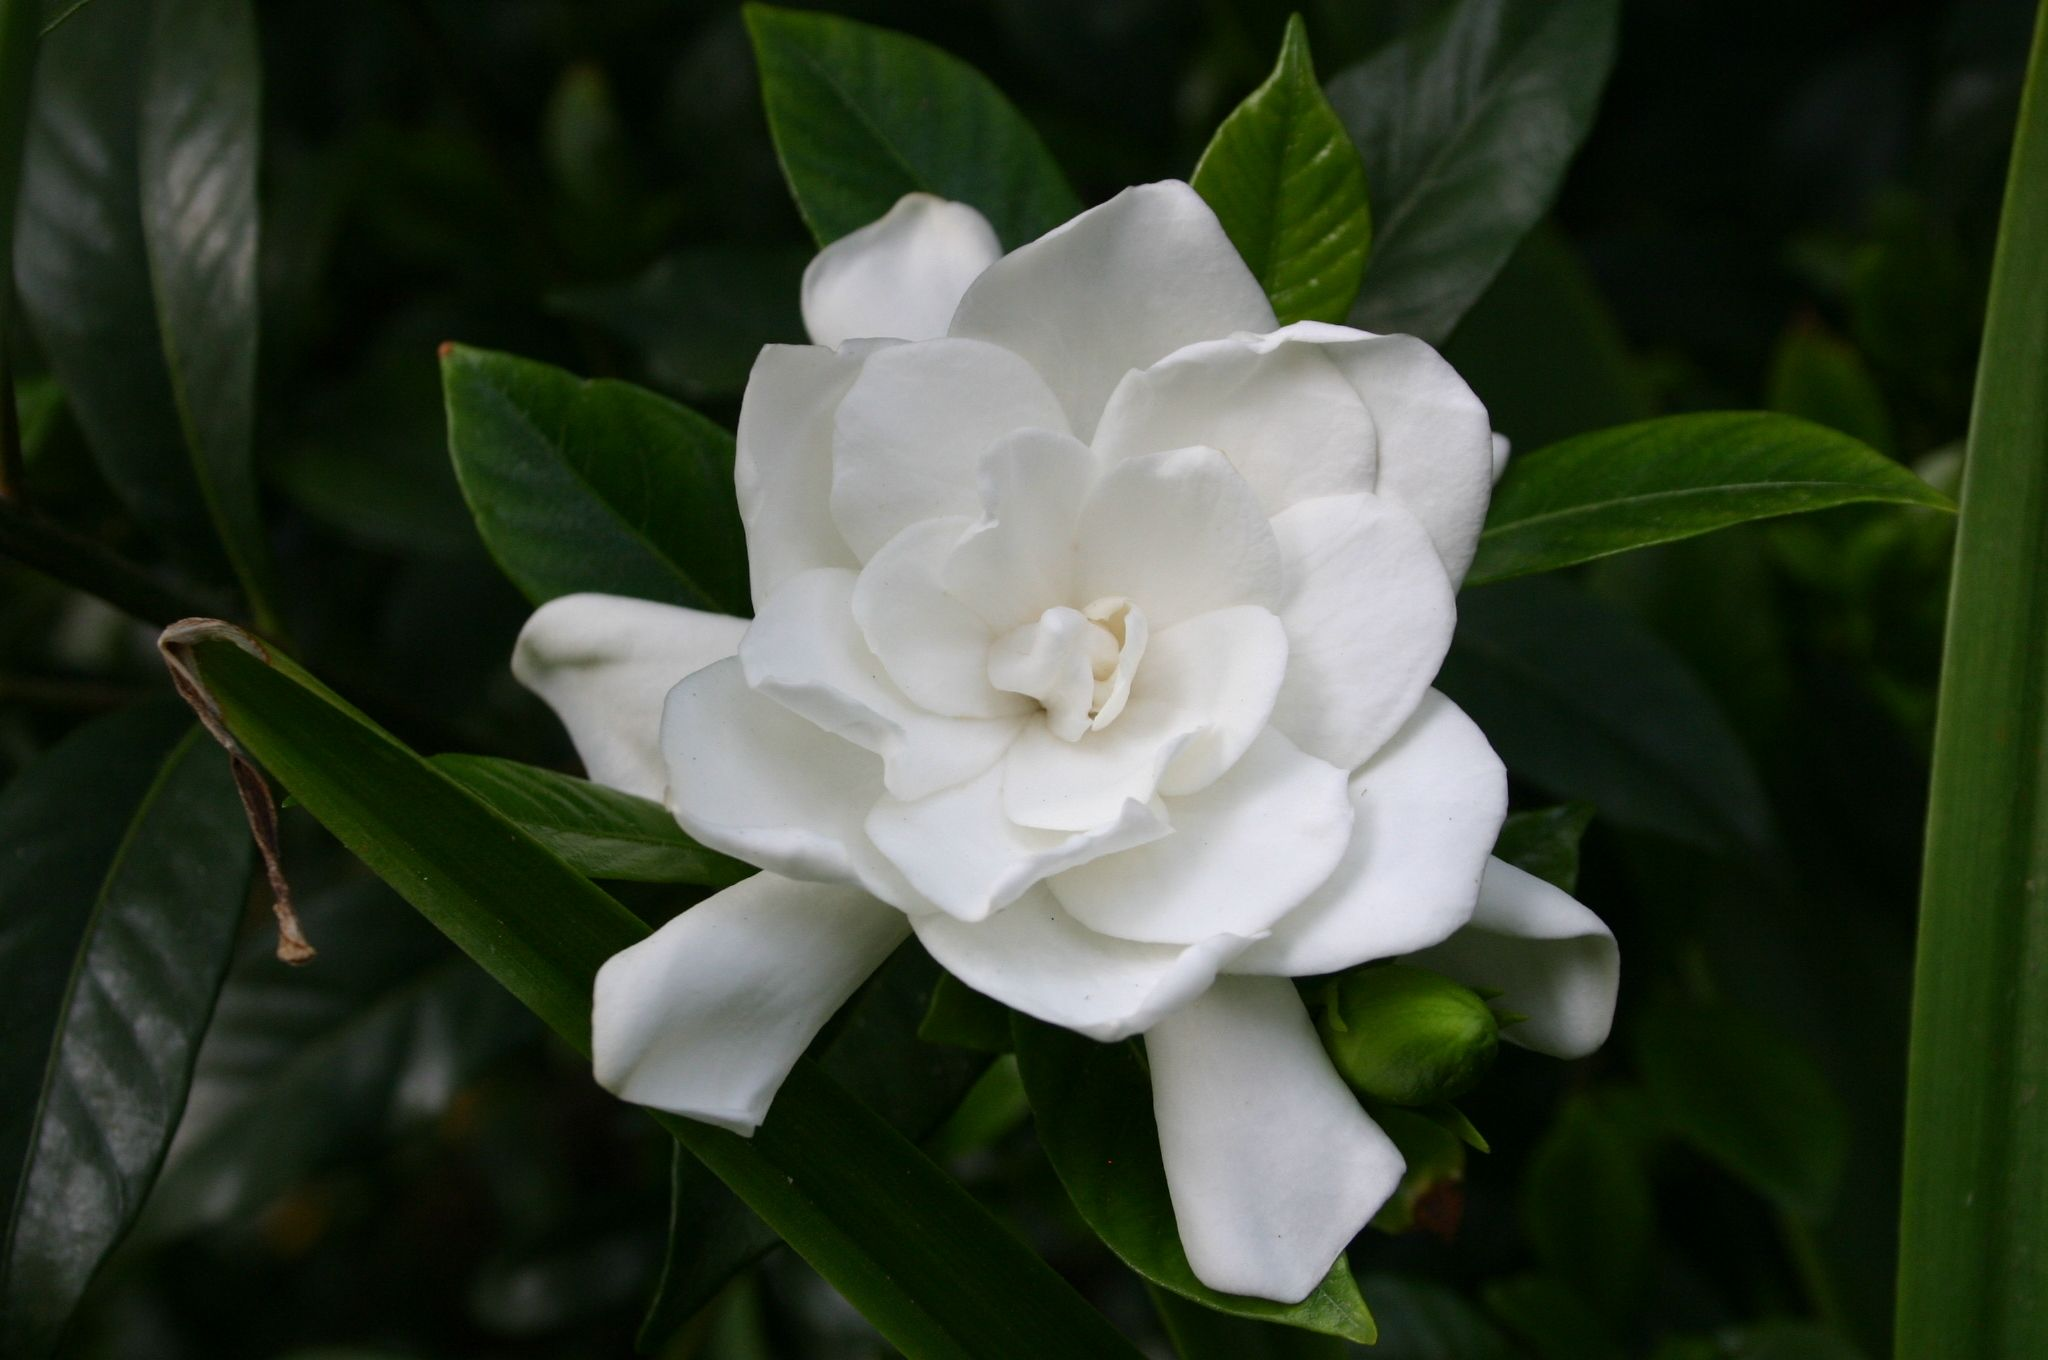 Pin By Jill Coats On Gardening Gardenia Plant Flower Background Wallpaper Plants